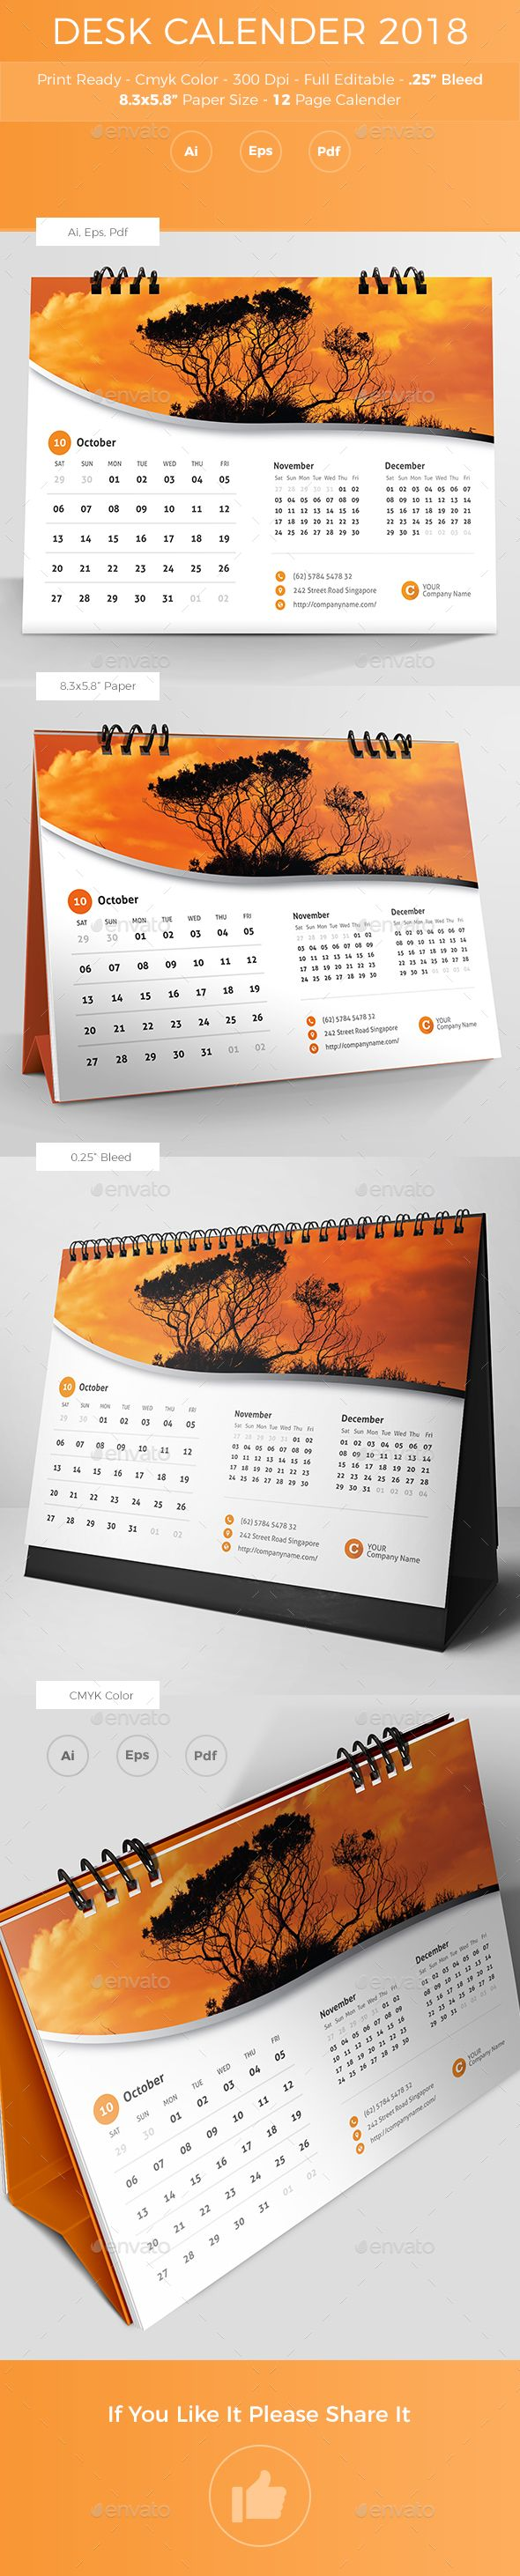 Desk Calender 2018 Ai Illustrator Template And Font Logo